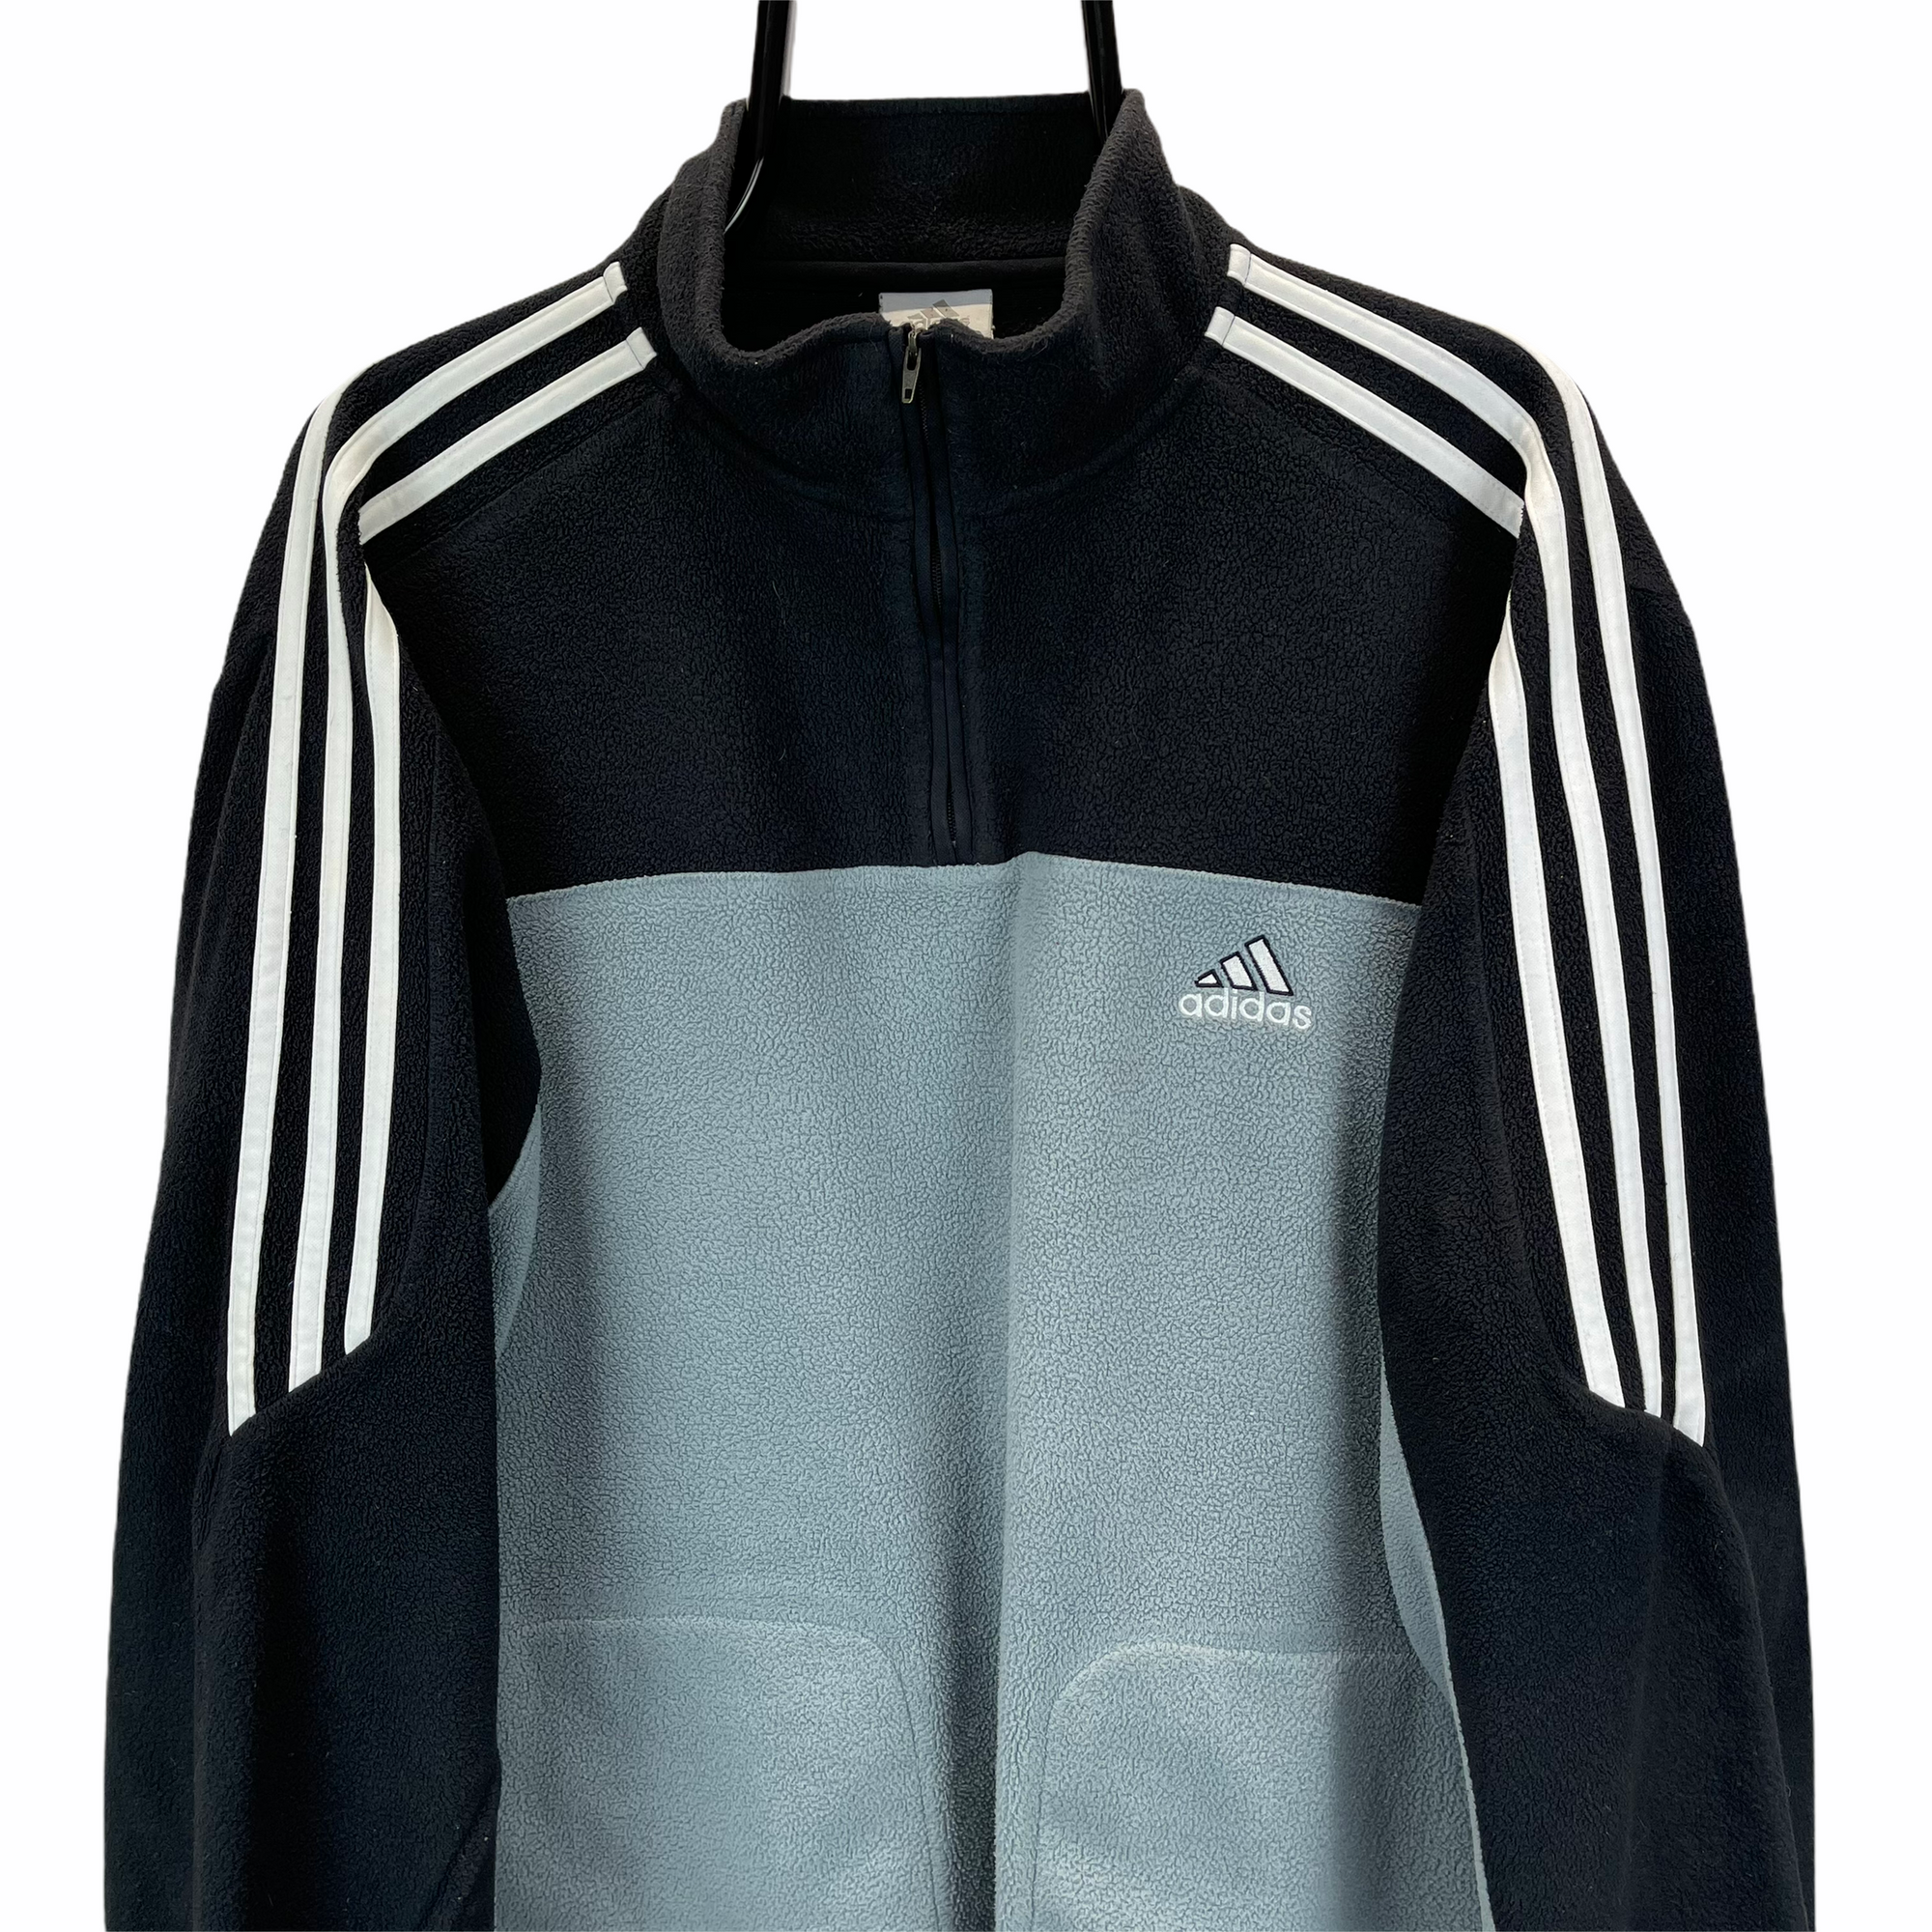 VINTAGE ADIDAS FLEECE IN DUCK EGG BLUE & BLACK - MEN'S LARGE/WOMEN'S XL